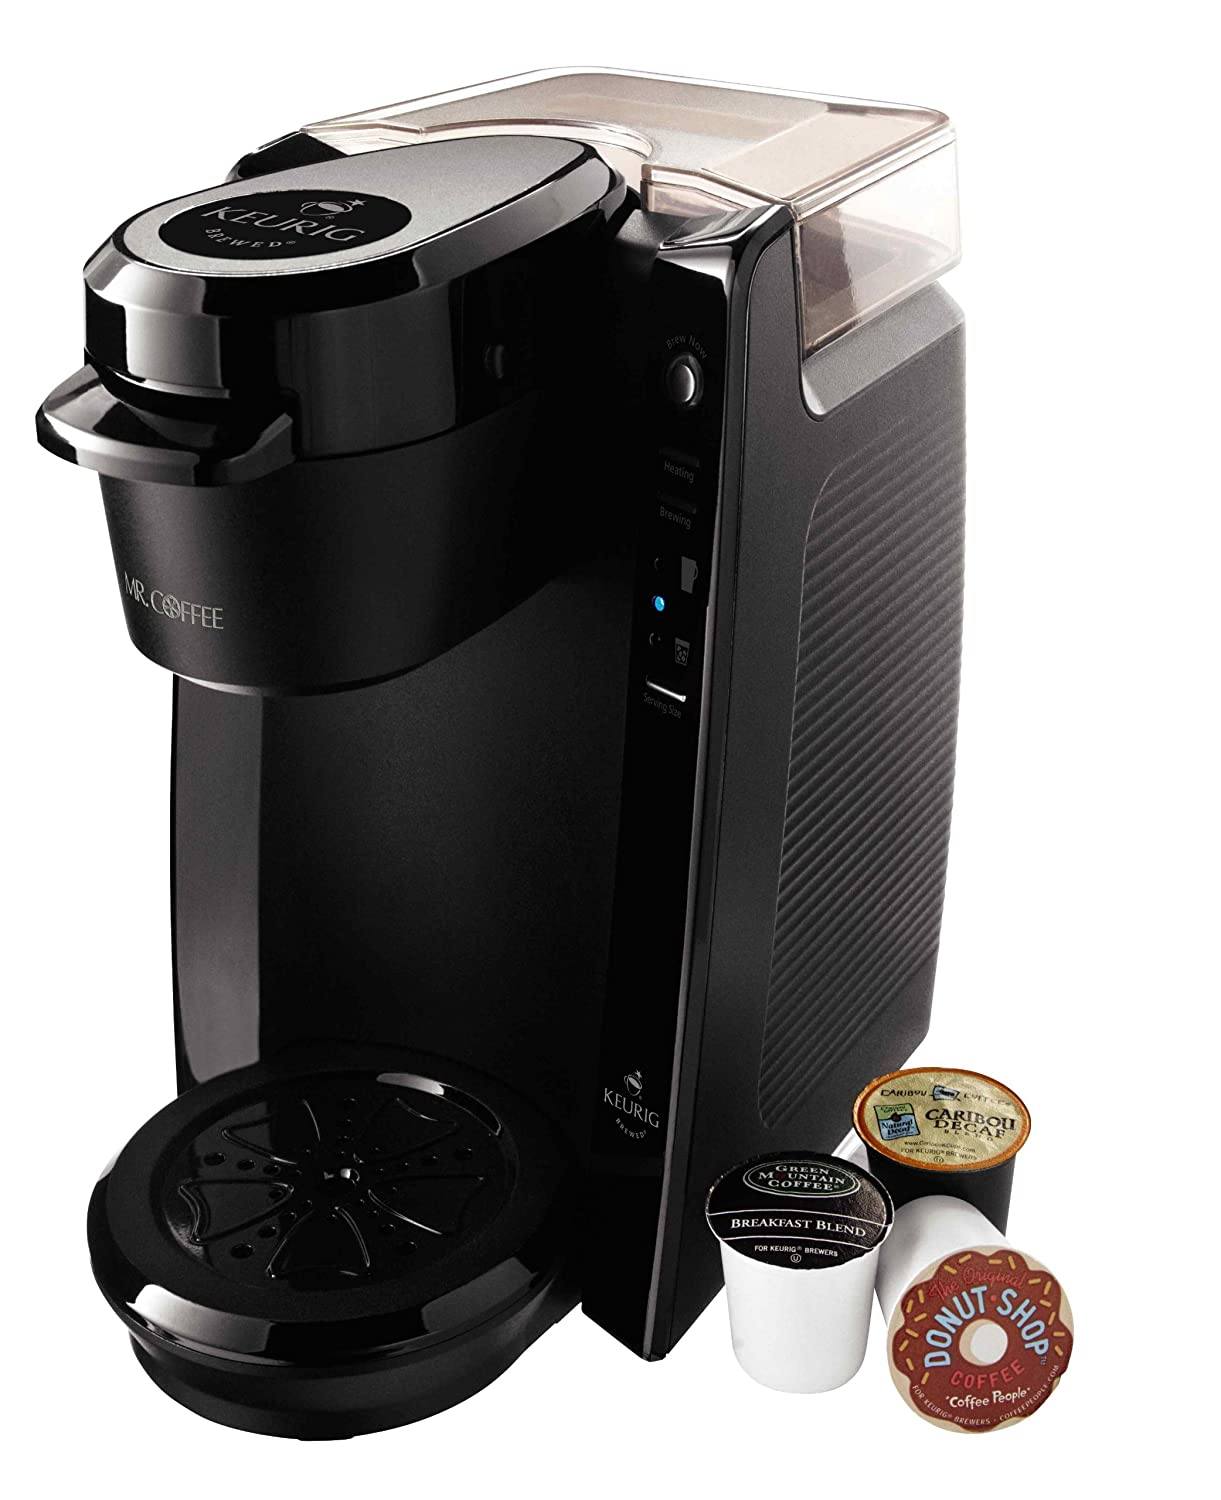 Mr. Coffee BVMC-KG5-001 Single Serve Coffee Brewer Powered by Keurig Brewing Tec 72179232391 eBay